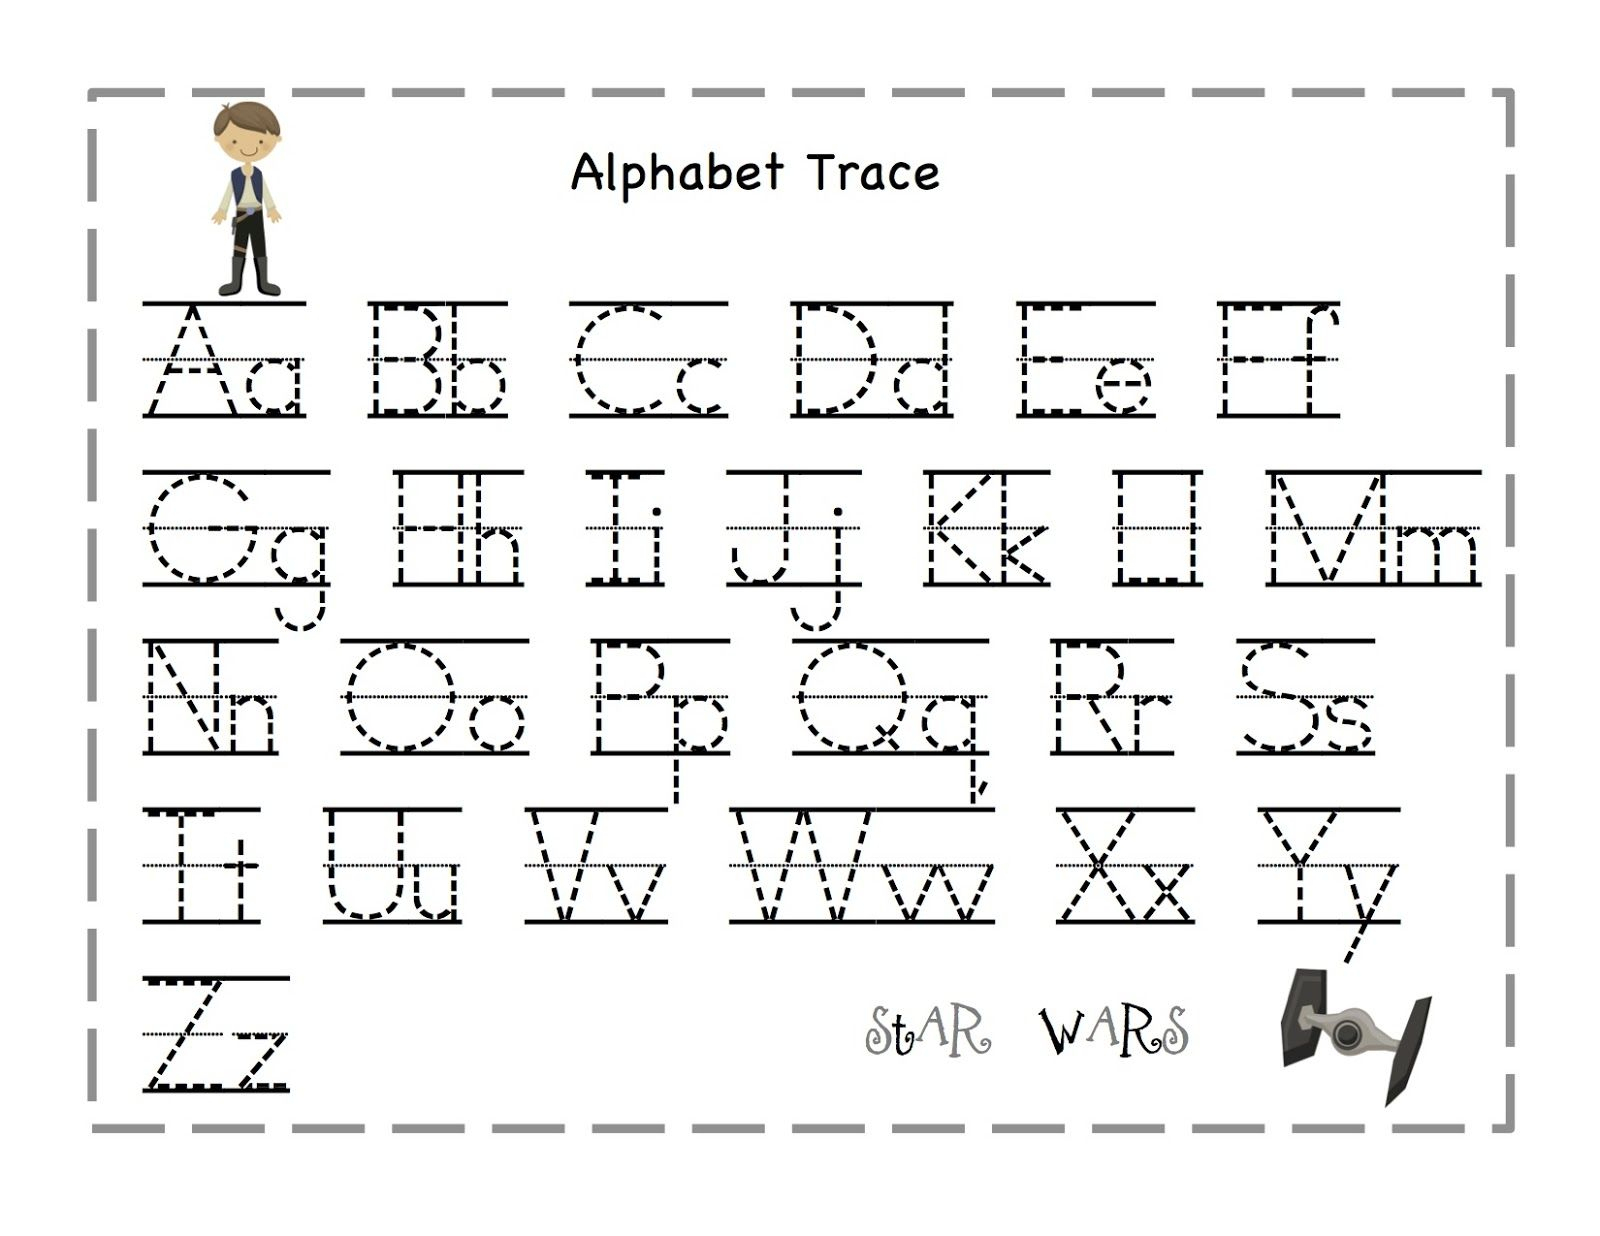 Free Printable Alphabet Letter Tracing Worksheets | Angeline - Free Printable Alphabet Tracing Worksheets For Kindergarten